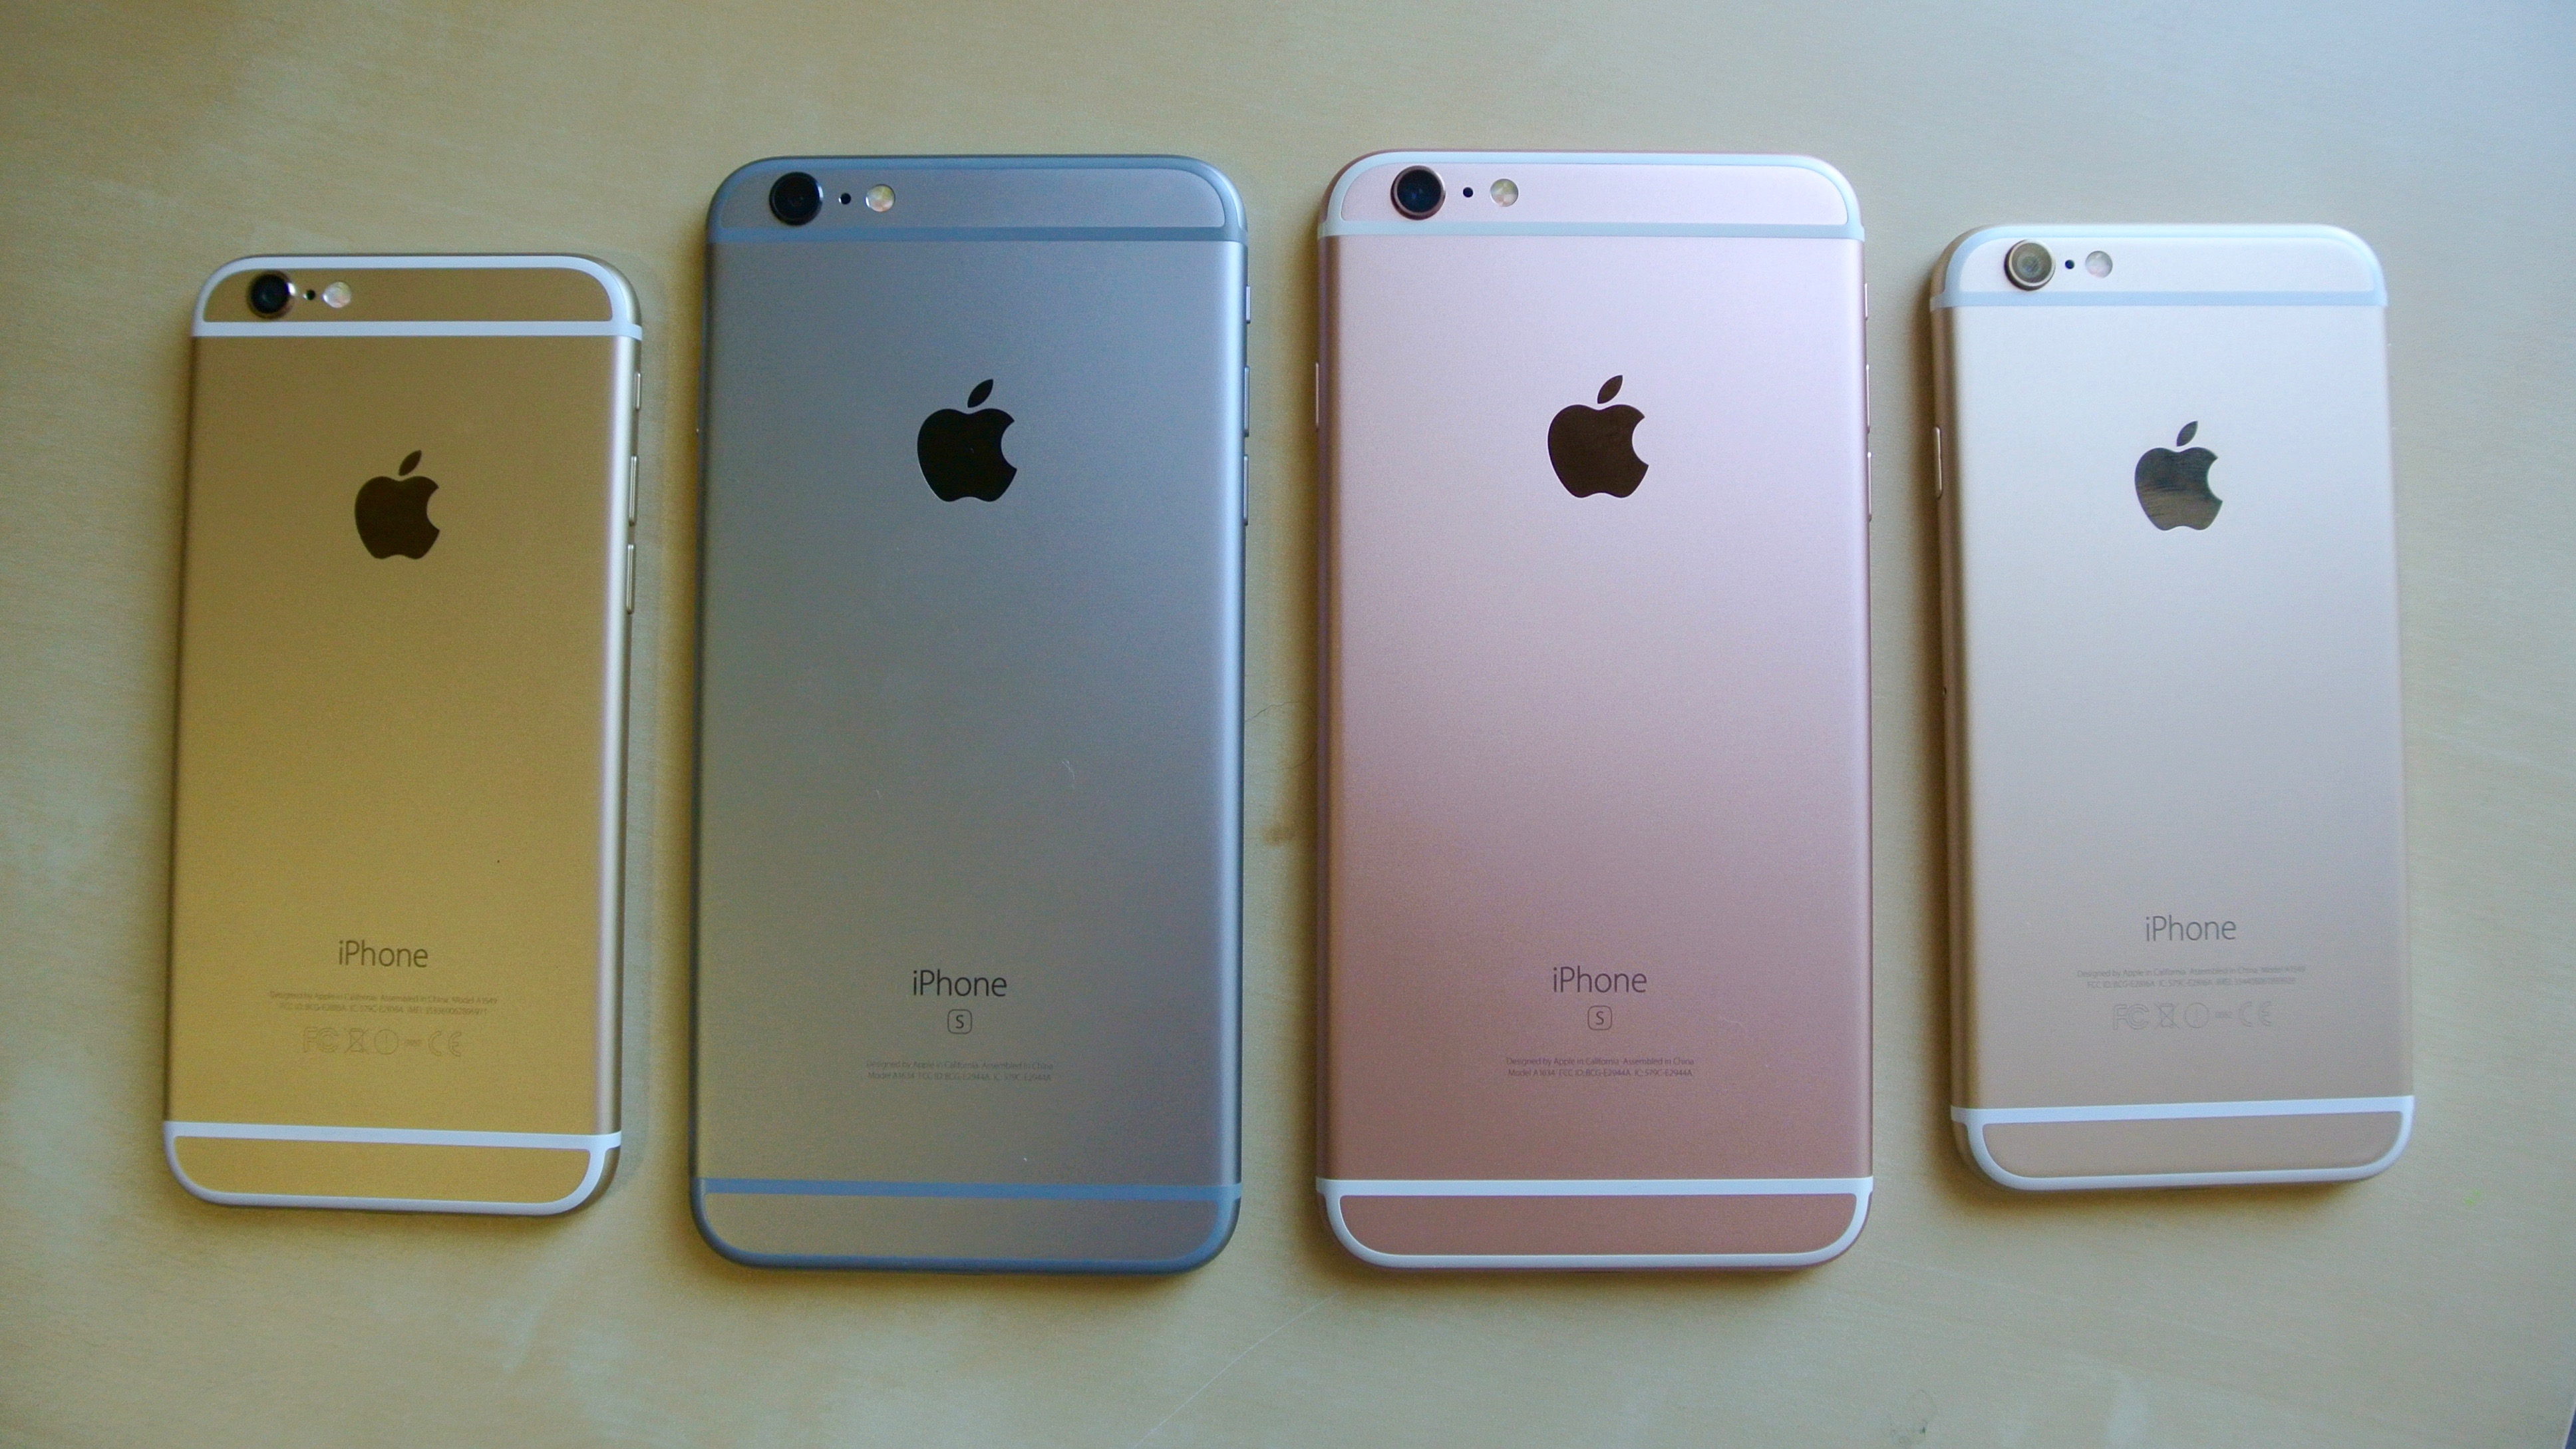 iPhone 6s Plus: hands-on & first impressions with Space Gray + Rose Gold [Gallery] - 9to5Mac